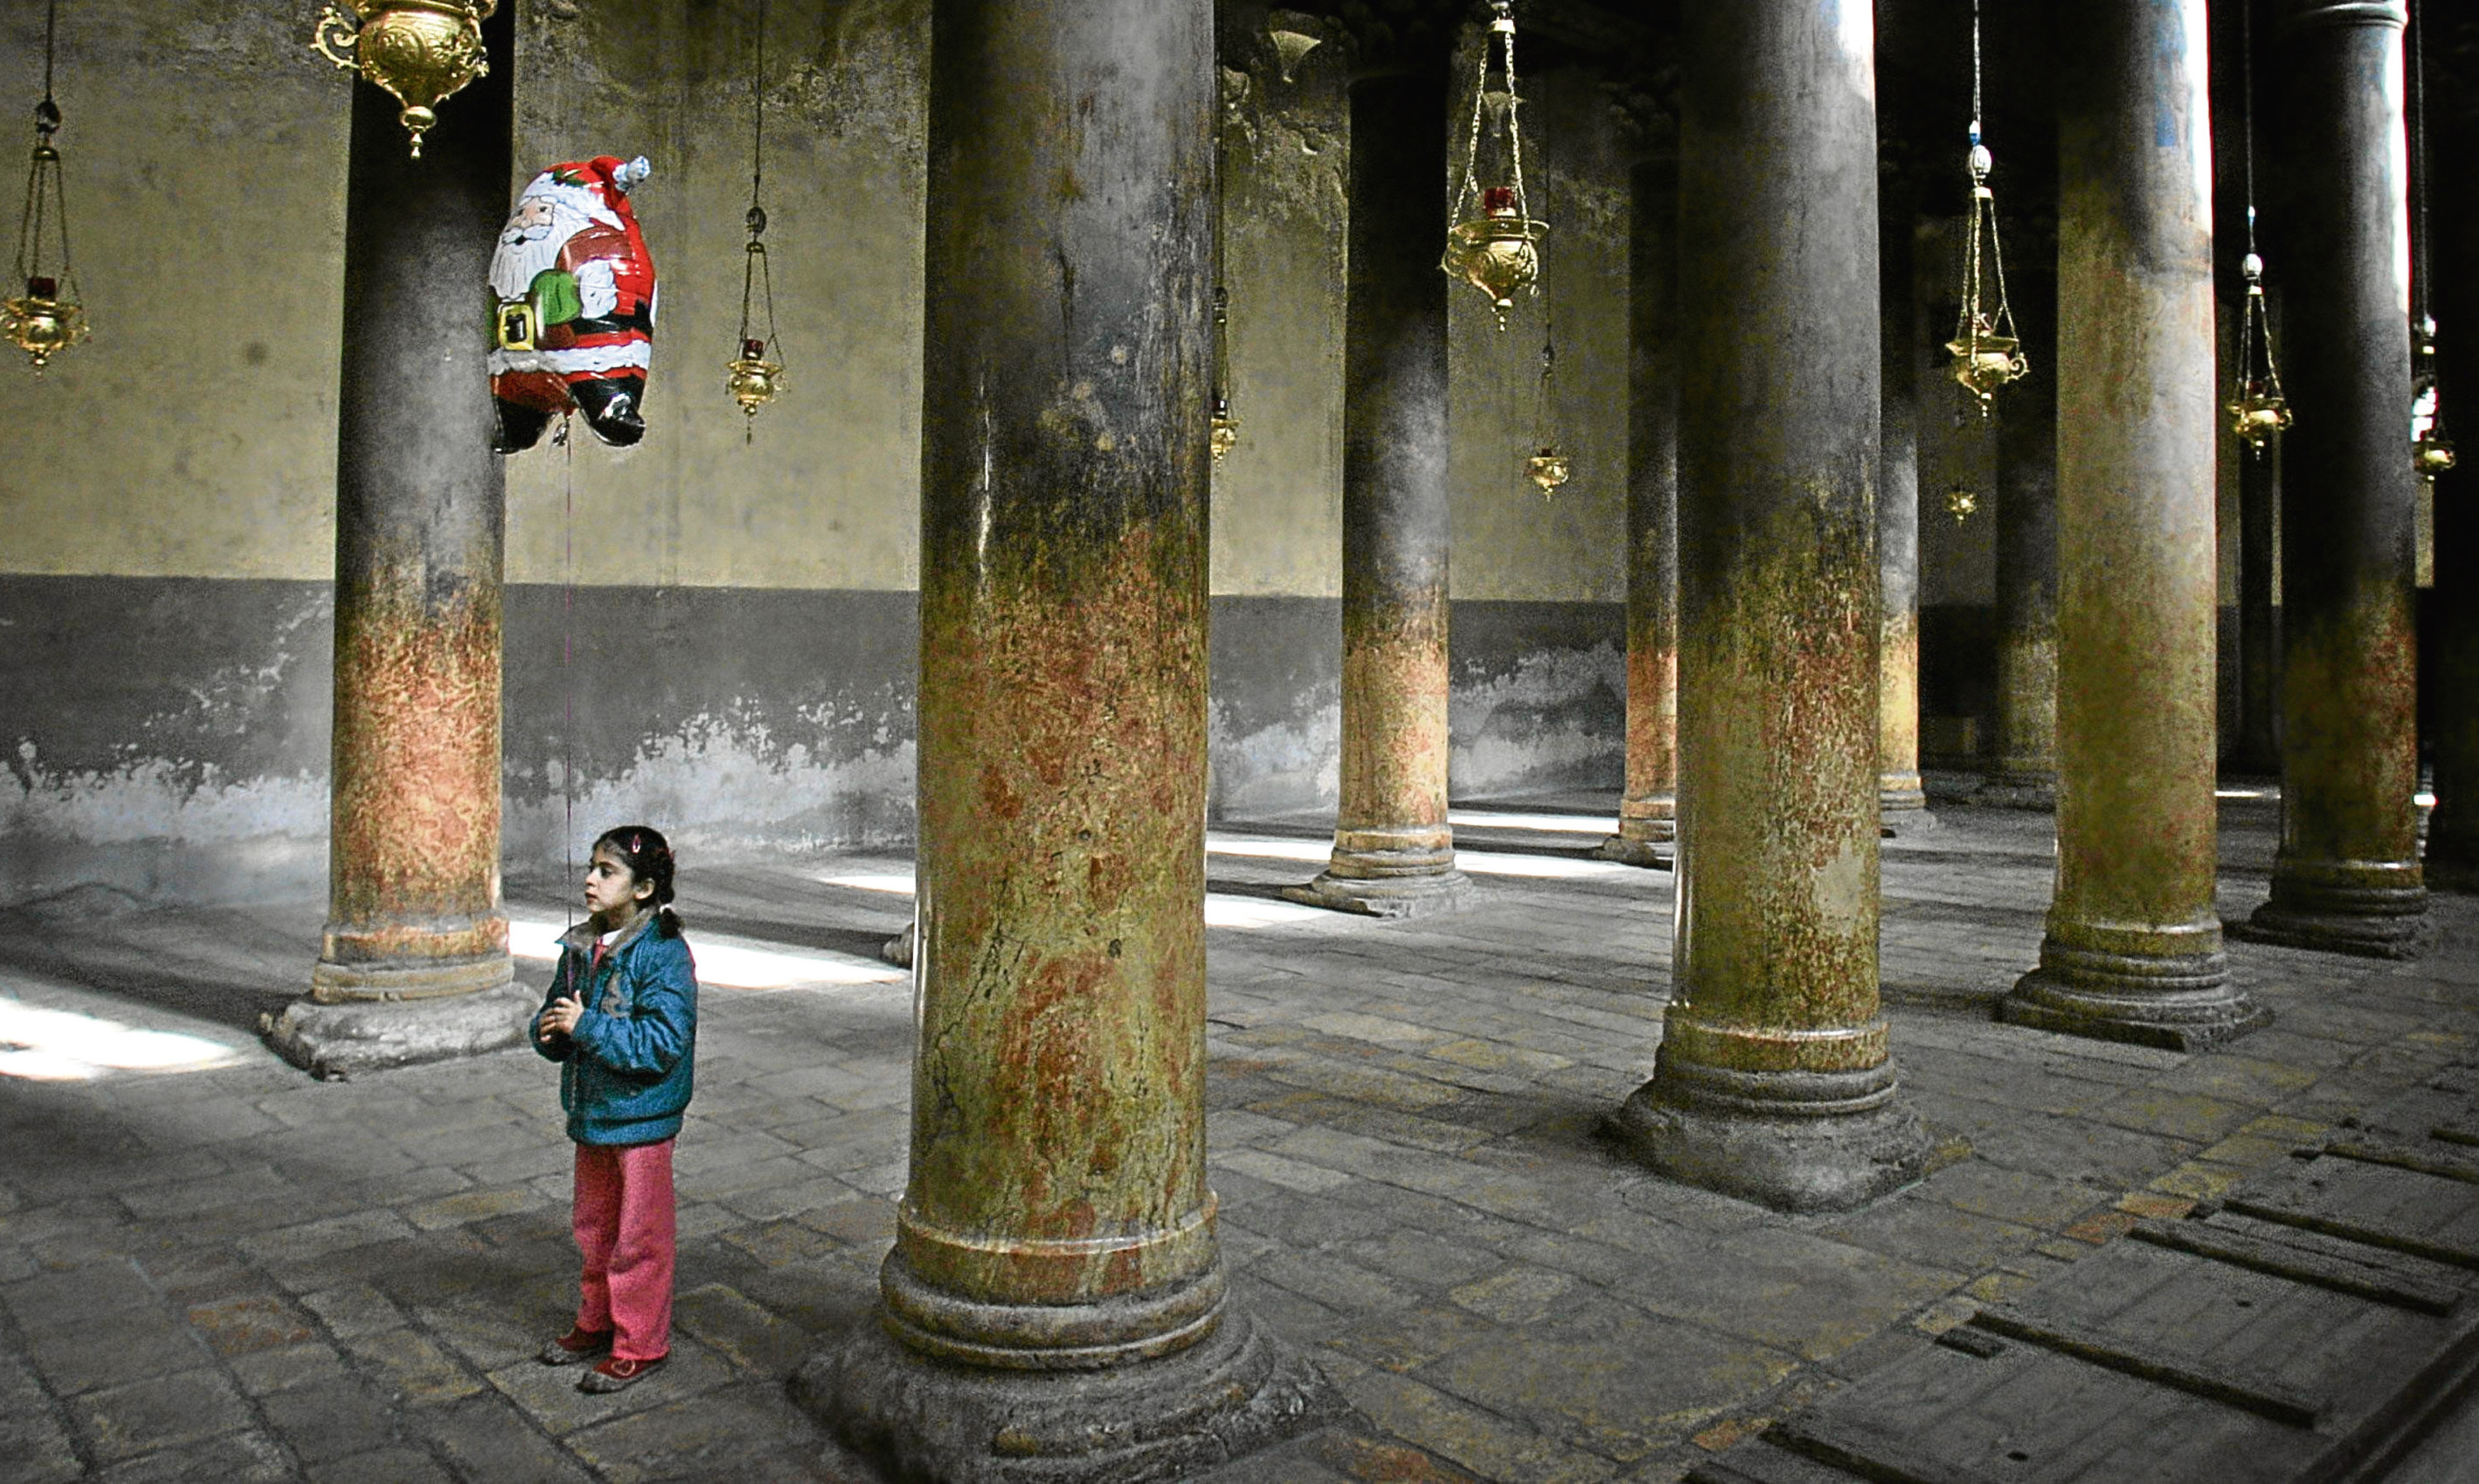 A Palestinian Christian girl holds a Santa Claus-shaped balloon as she stands in the Church of the Nativity in Bethlehem.